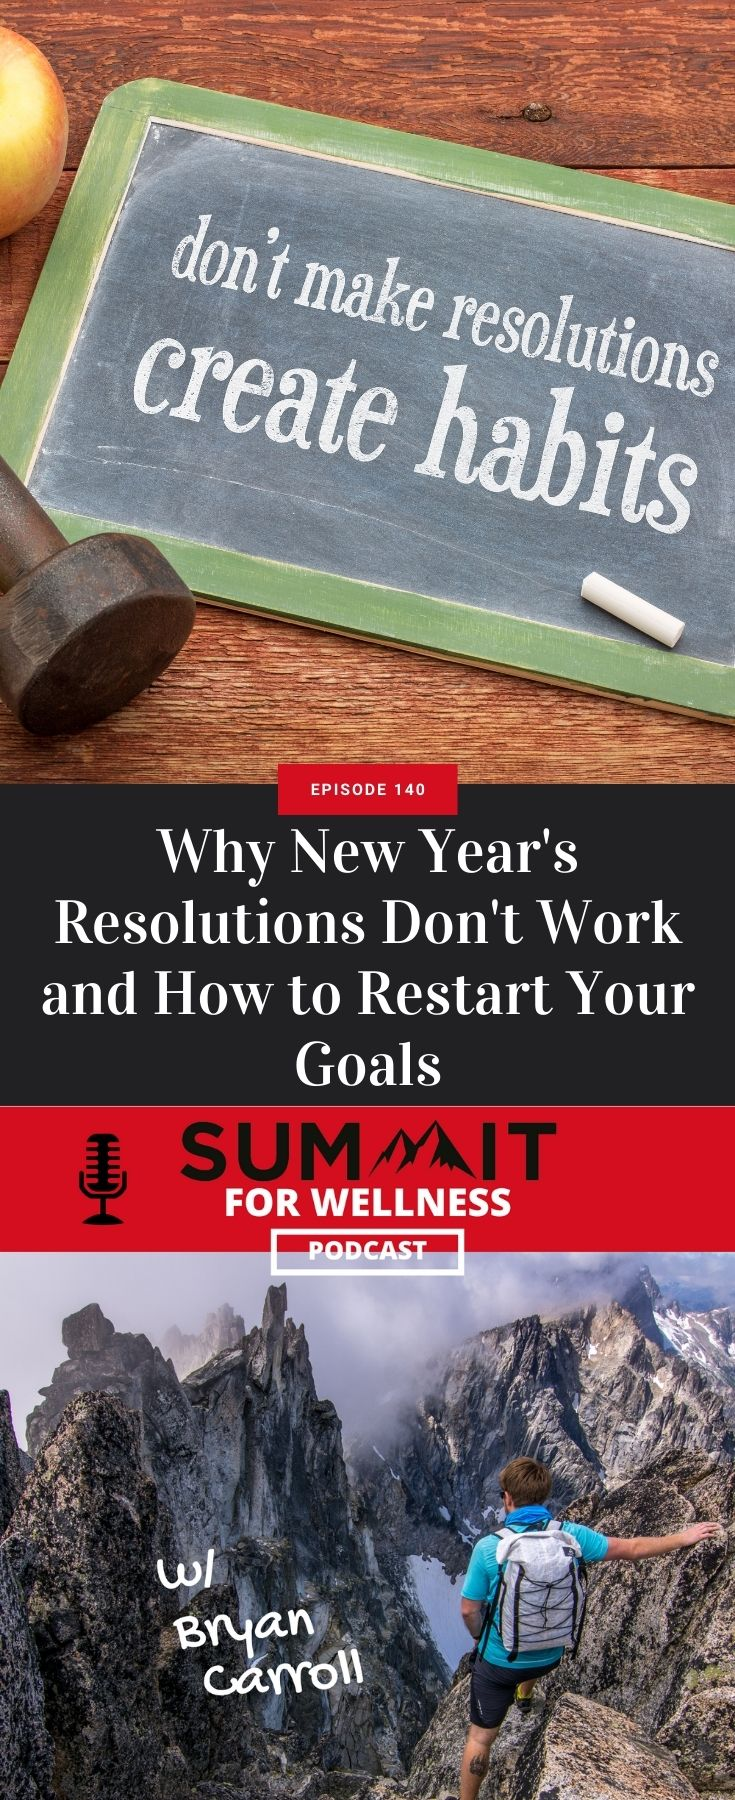 Learn from Bryan Carroll why New Year's Resolutions don't work and how to make achievable goals instead